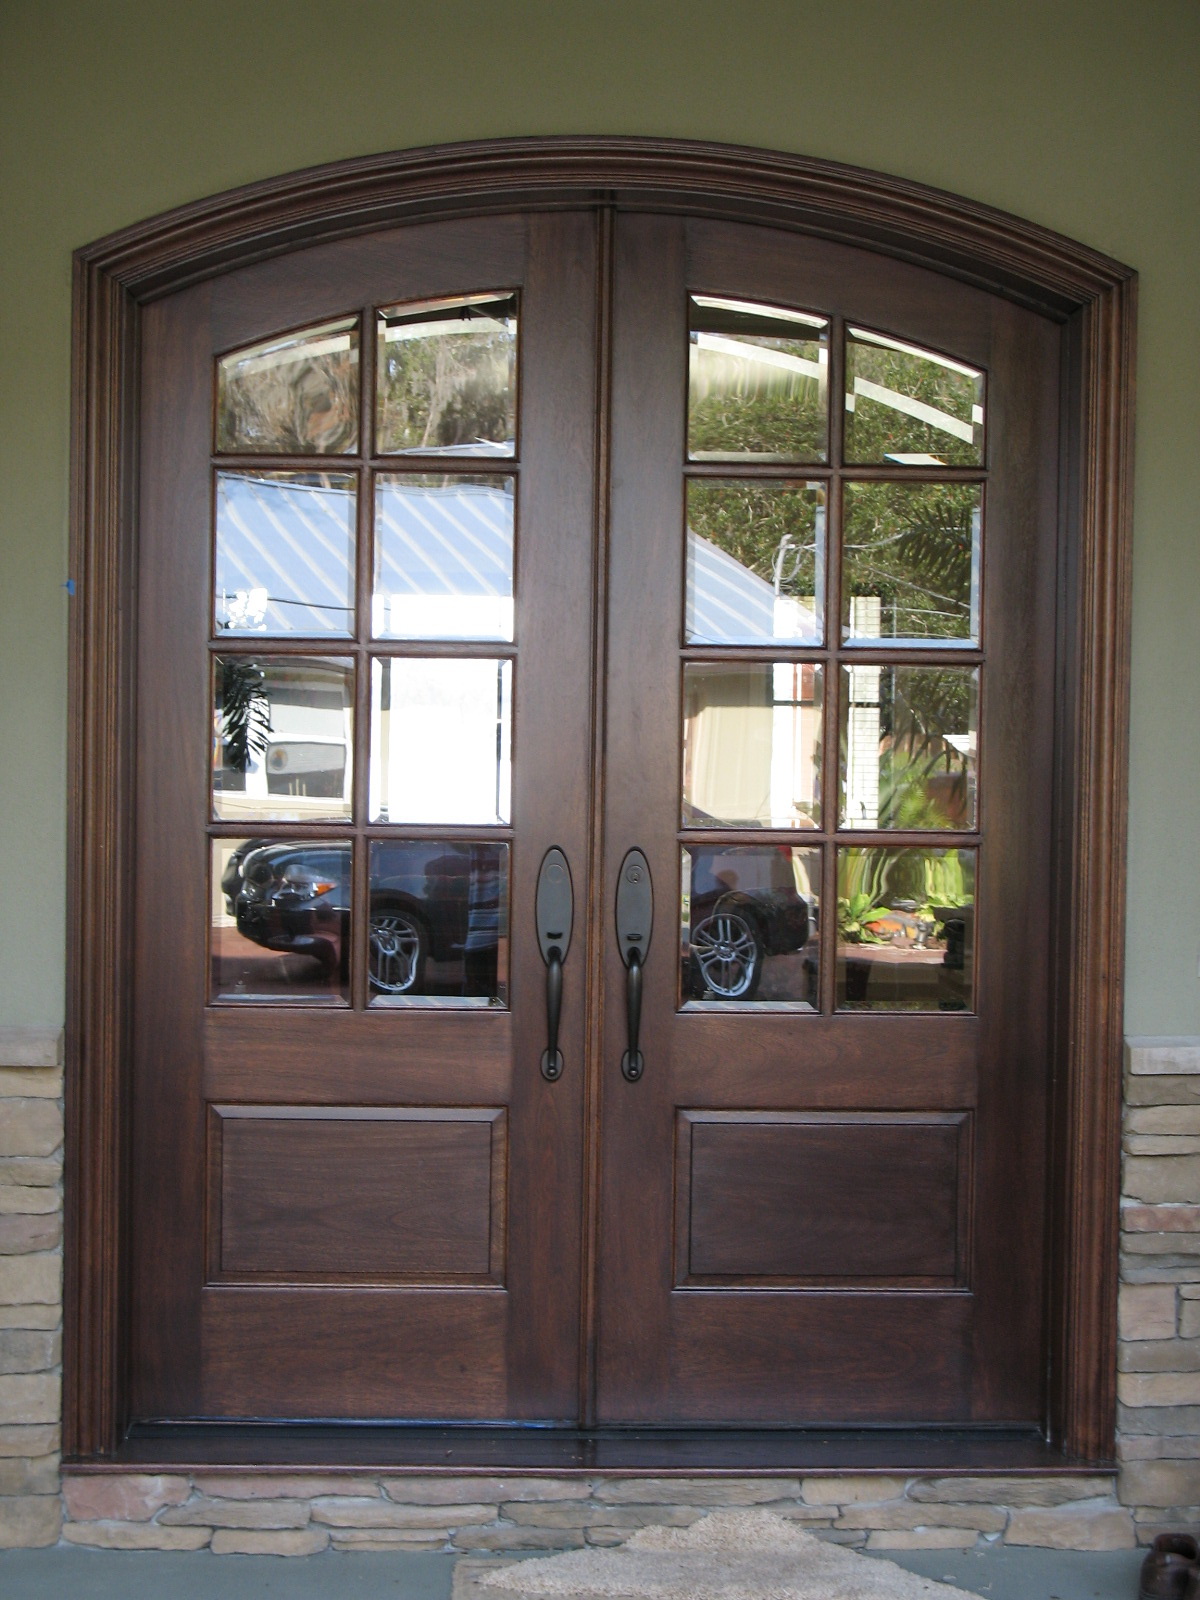 1000 images about front doors on pinterest the doors for New double front doors